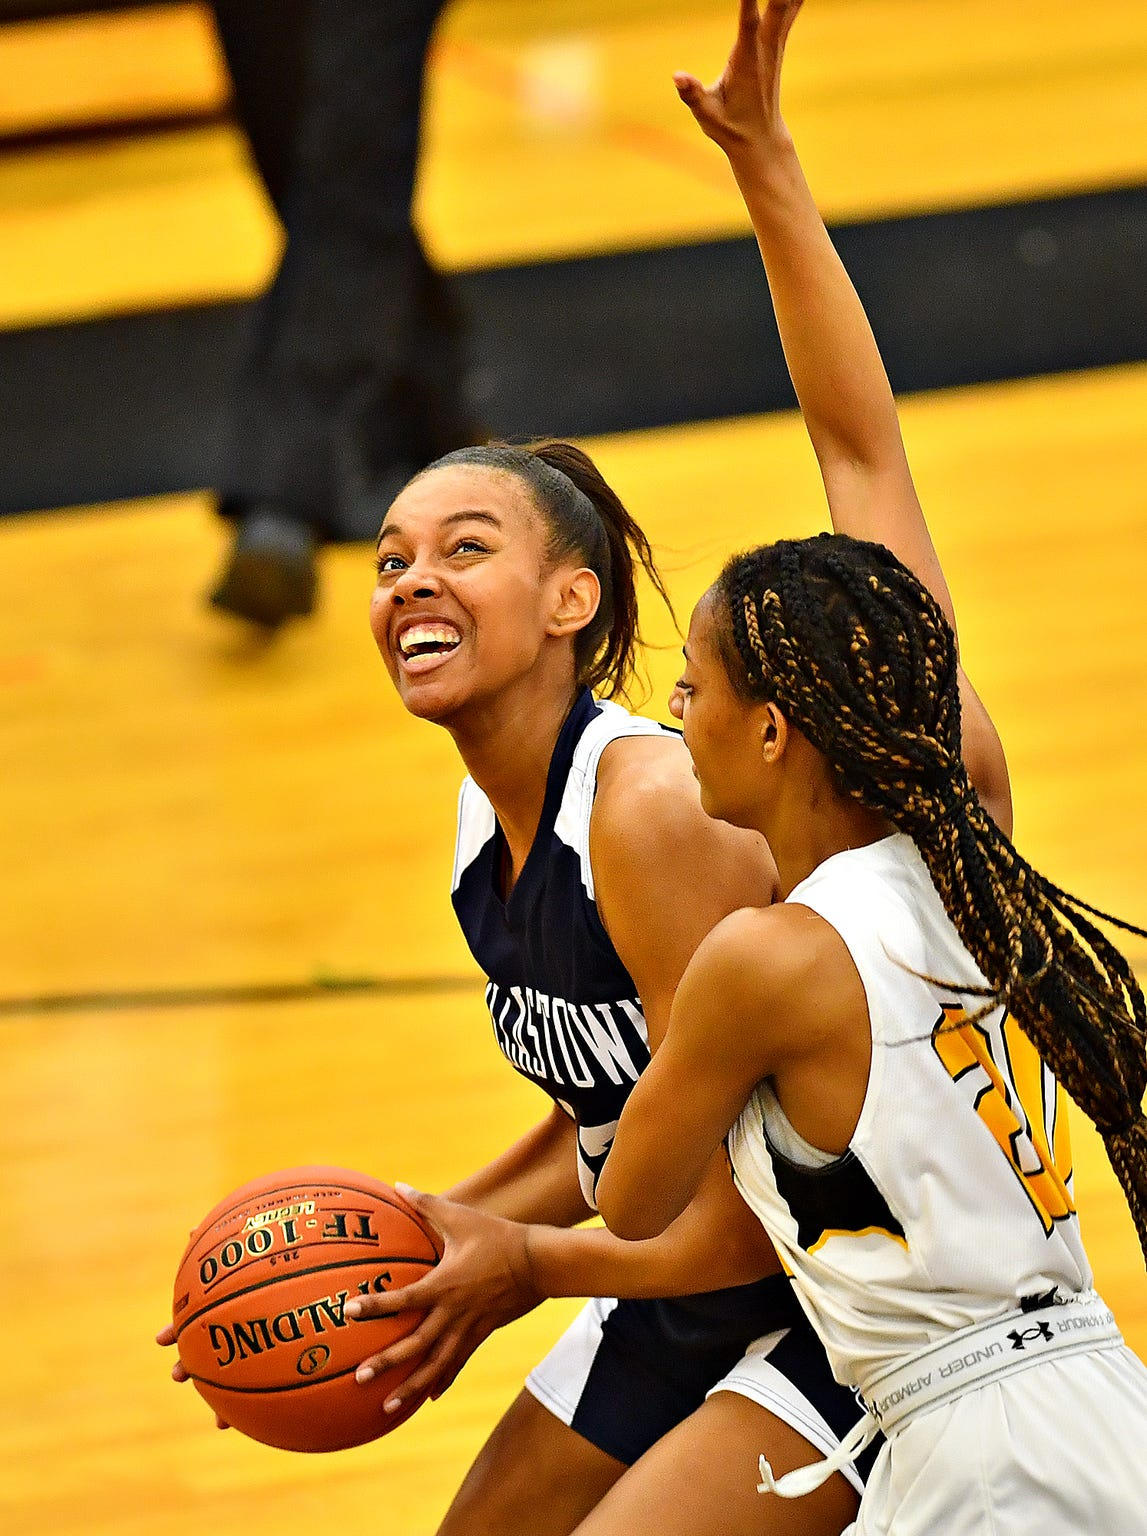 Dallastown's Aniya Matthews, left, sets her sites on the hoop while Red Lion's Makiah Shaw defends during basketball action at Red Lion Area Senior High School in Red Lion, Wednesday, Jan. 8, 2020. Dawn J. Sagert photo